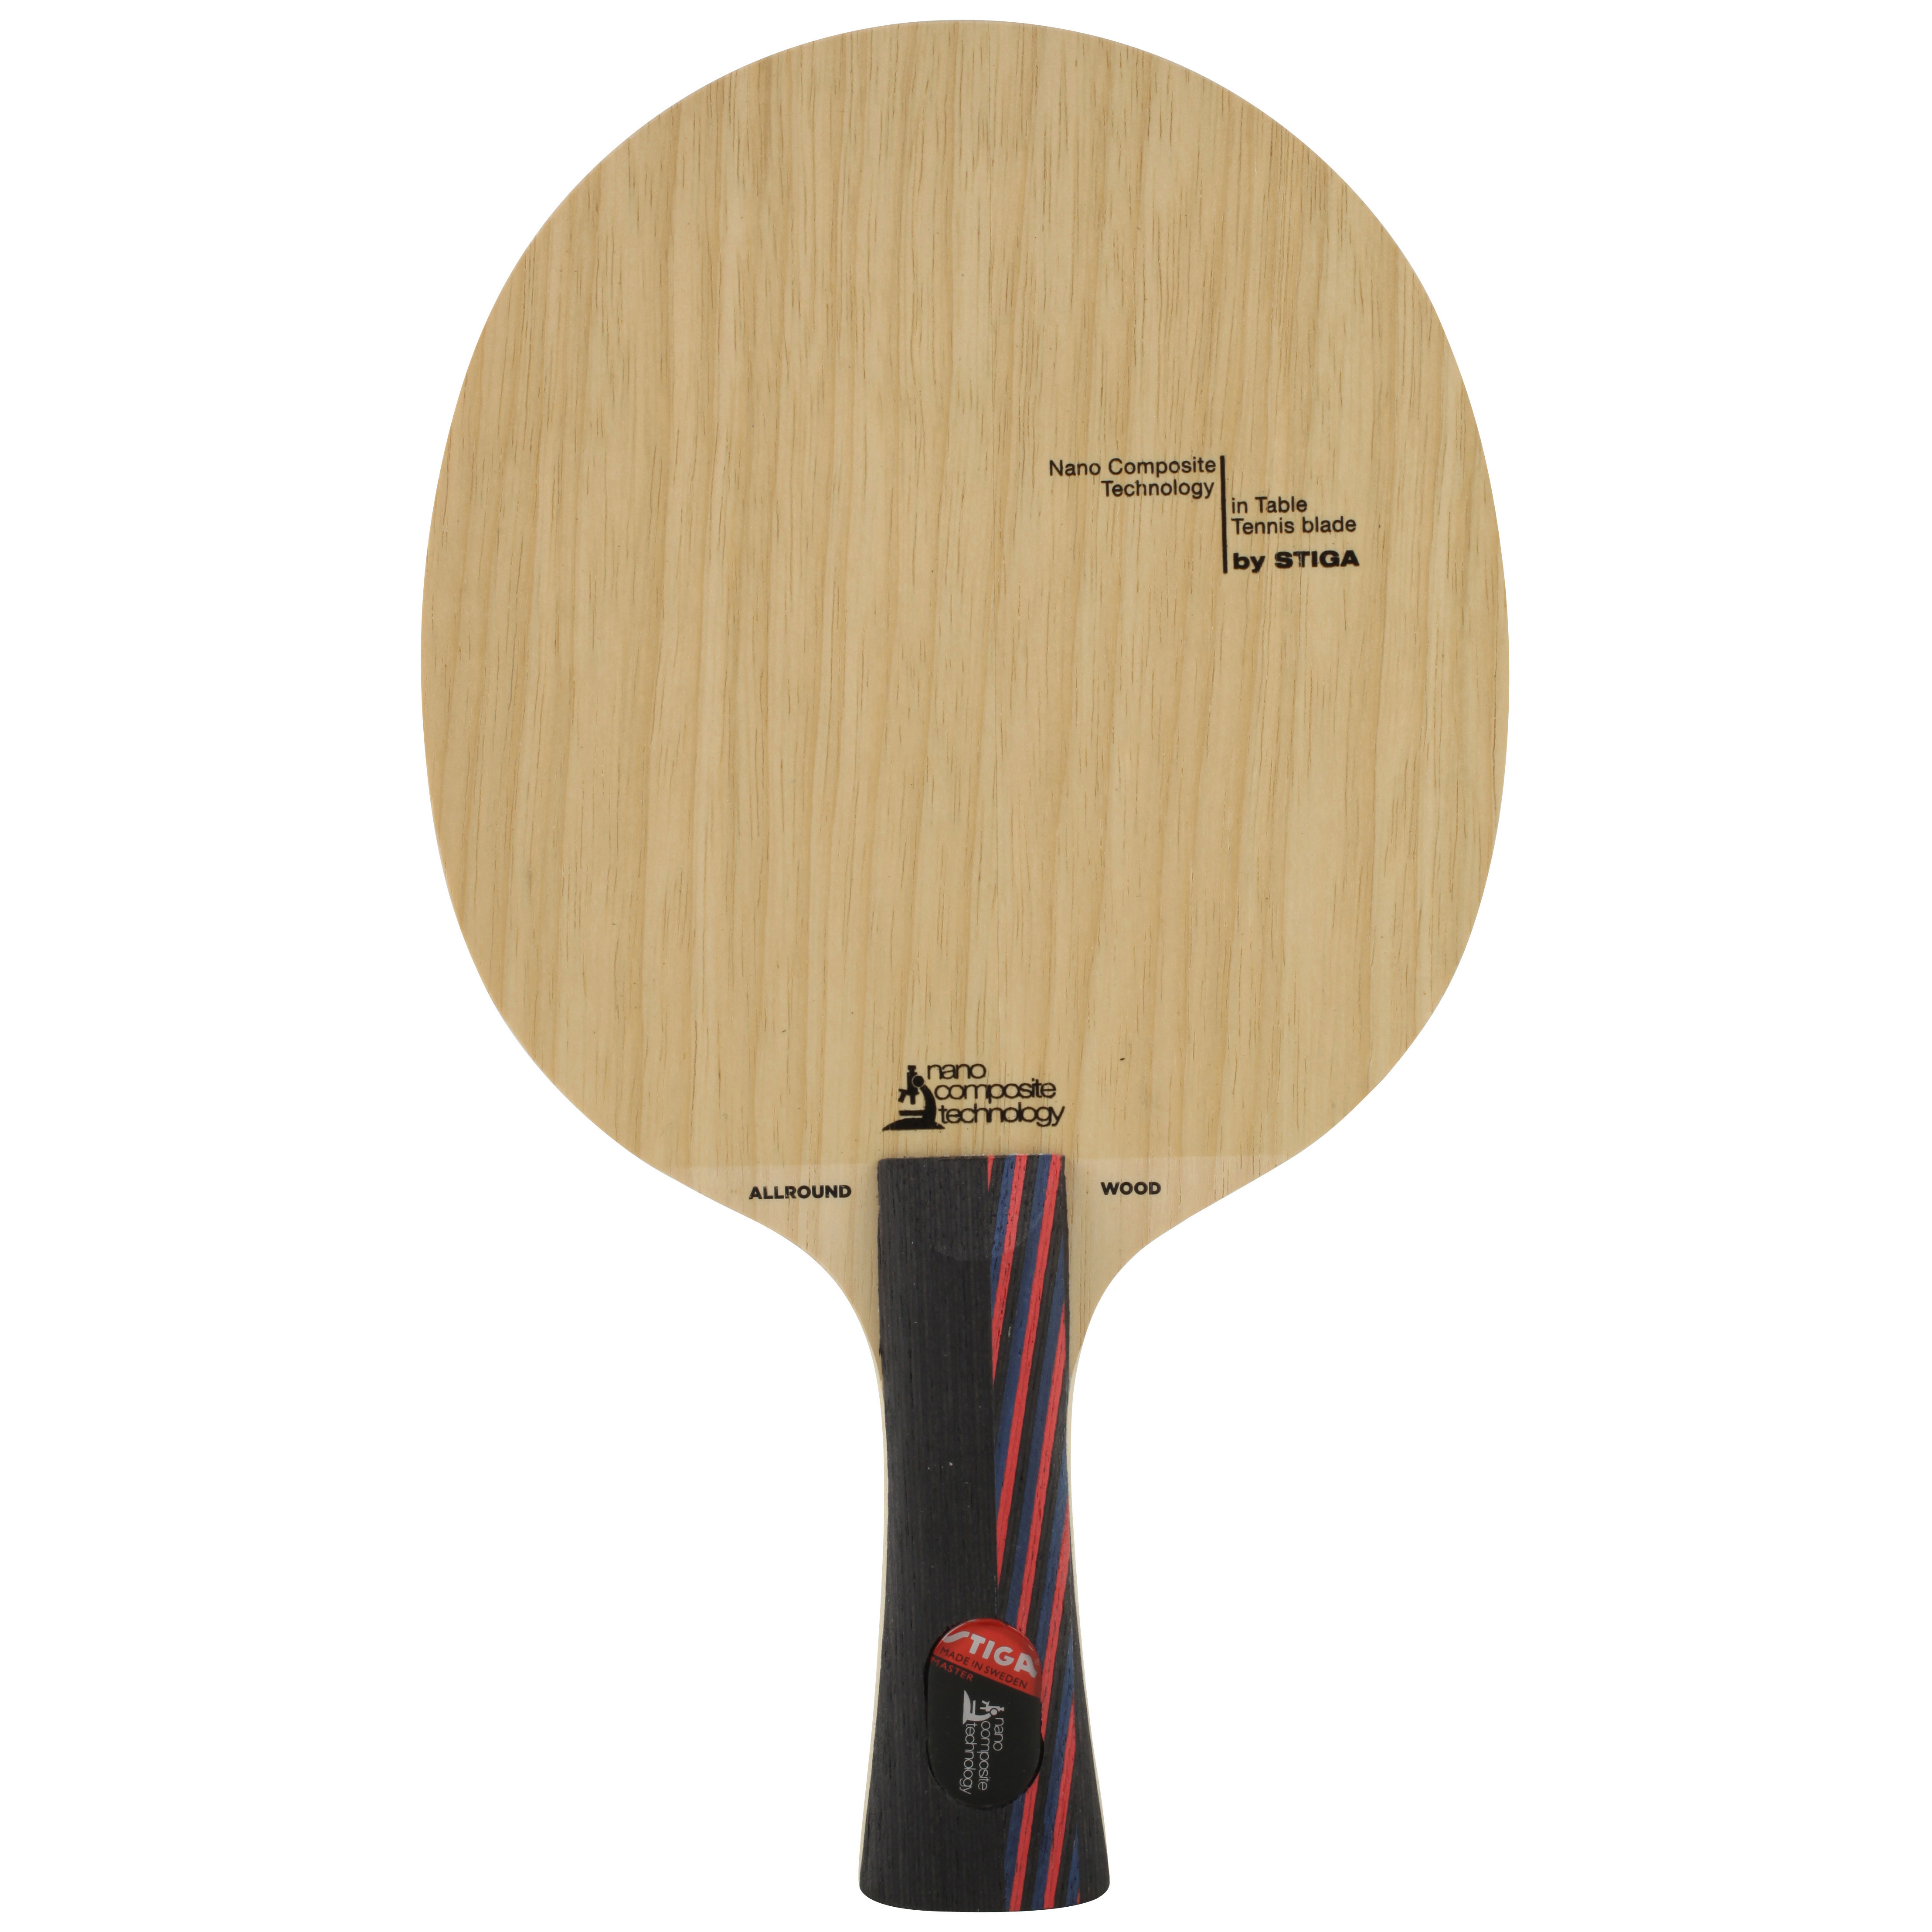 Allround Wood NCT Table tennis blade